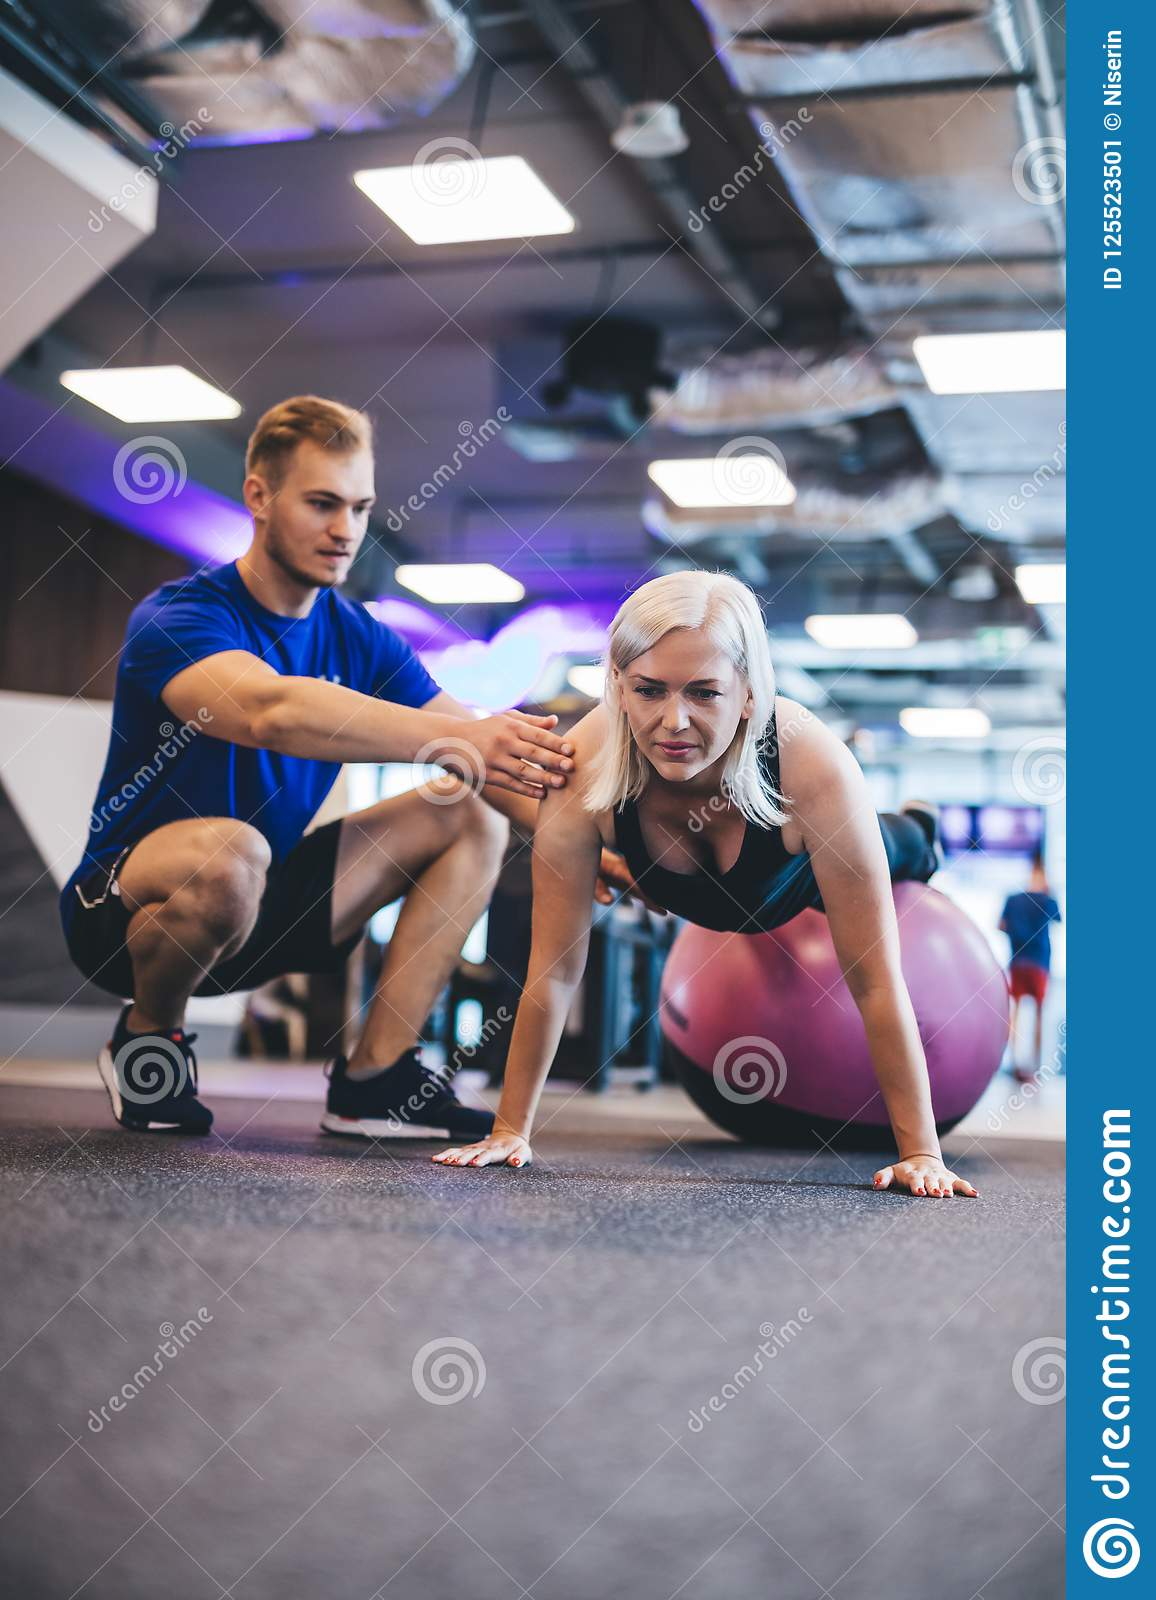 Woman exercising on a ball and a man securing her.